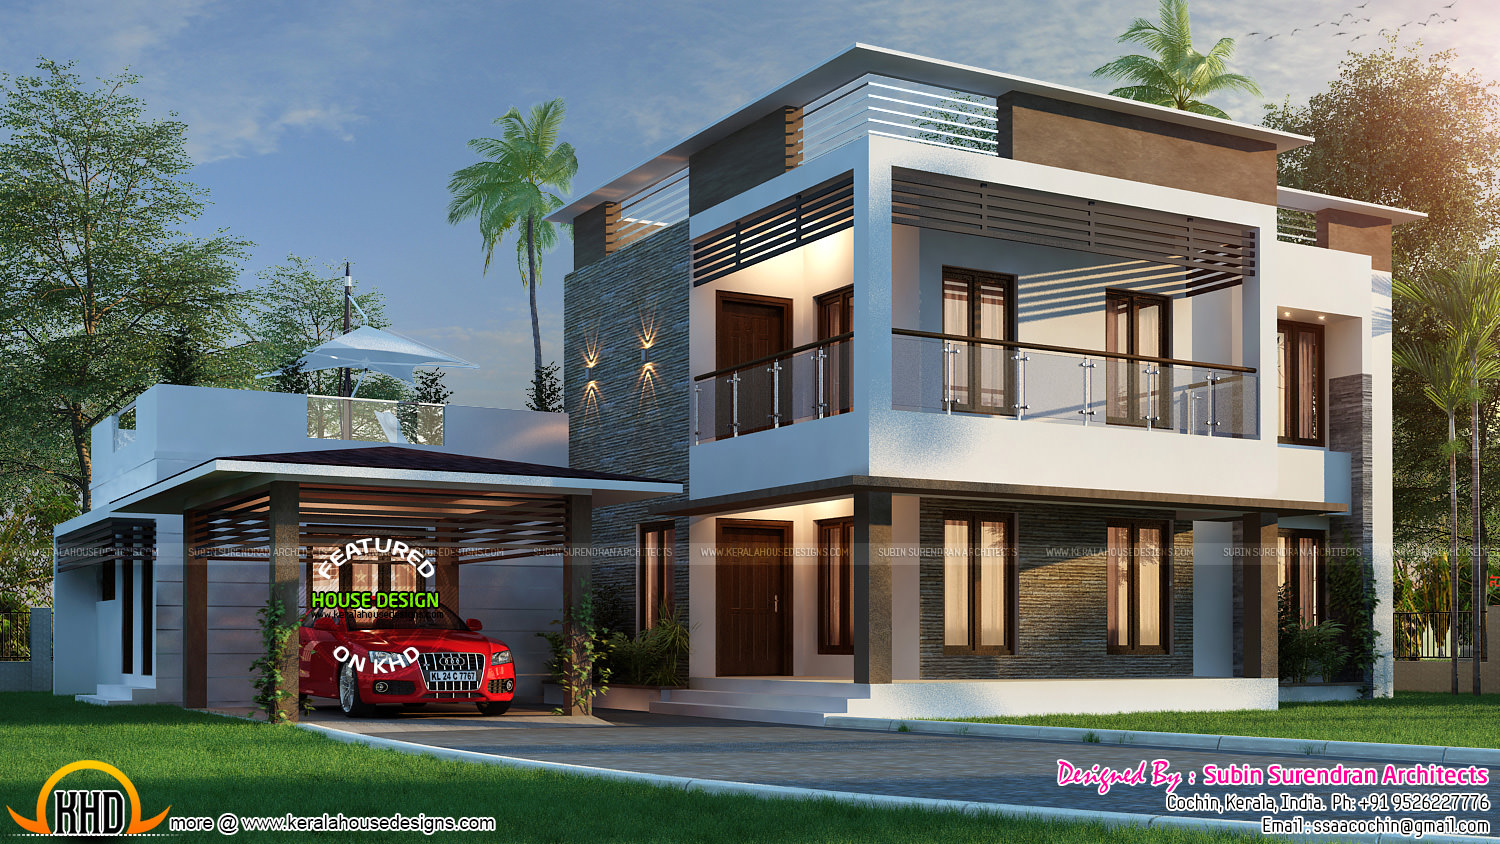 New house plans in kerala 2017 for Kerala new house plans